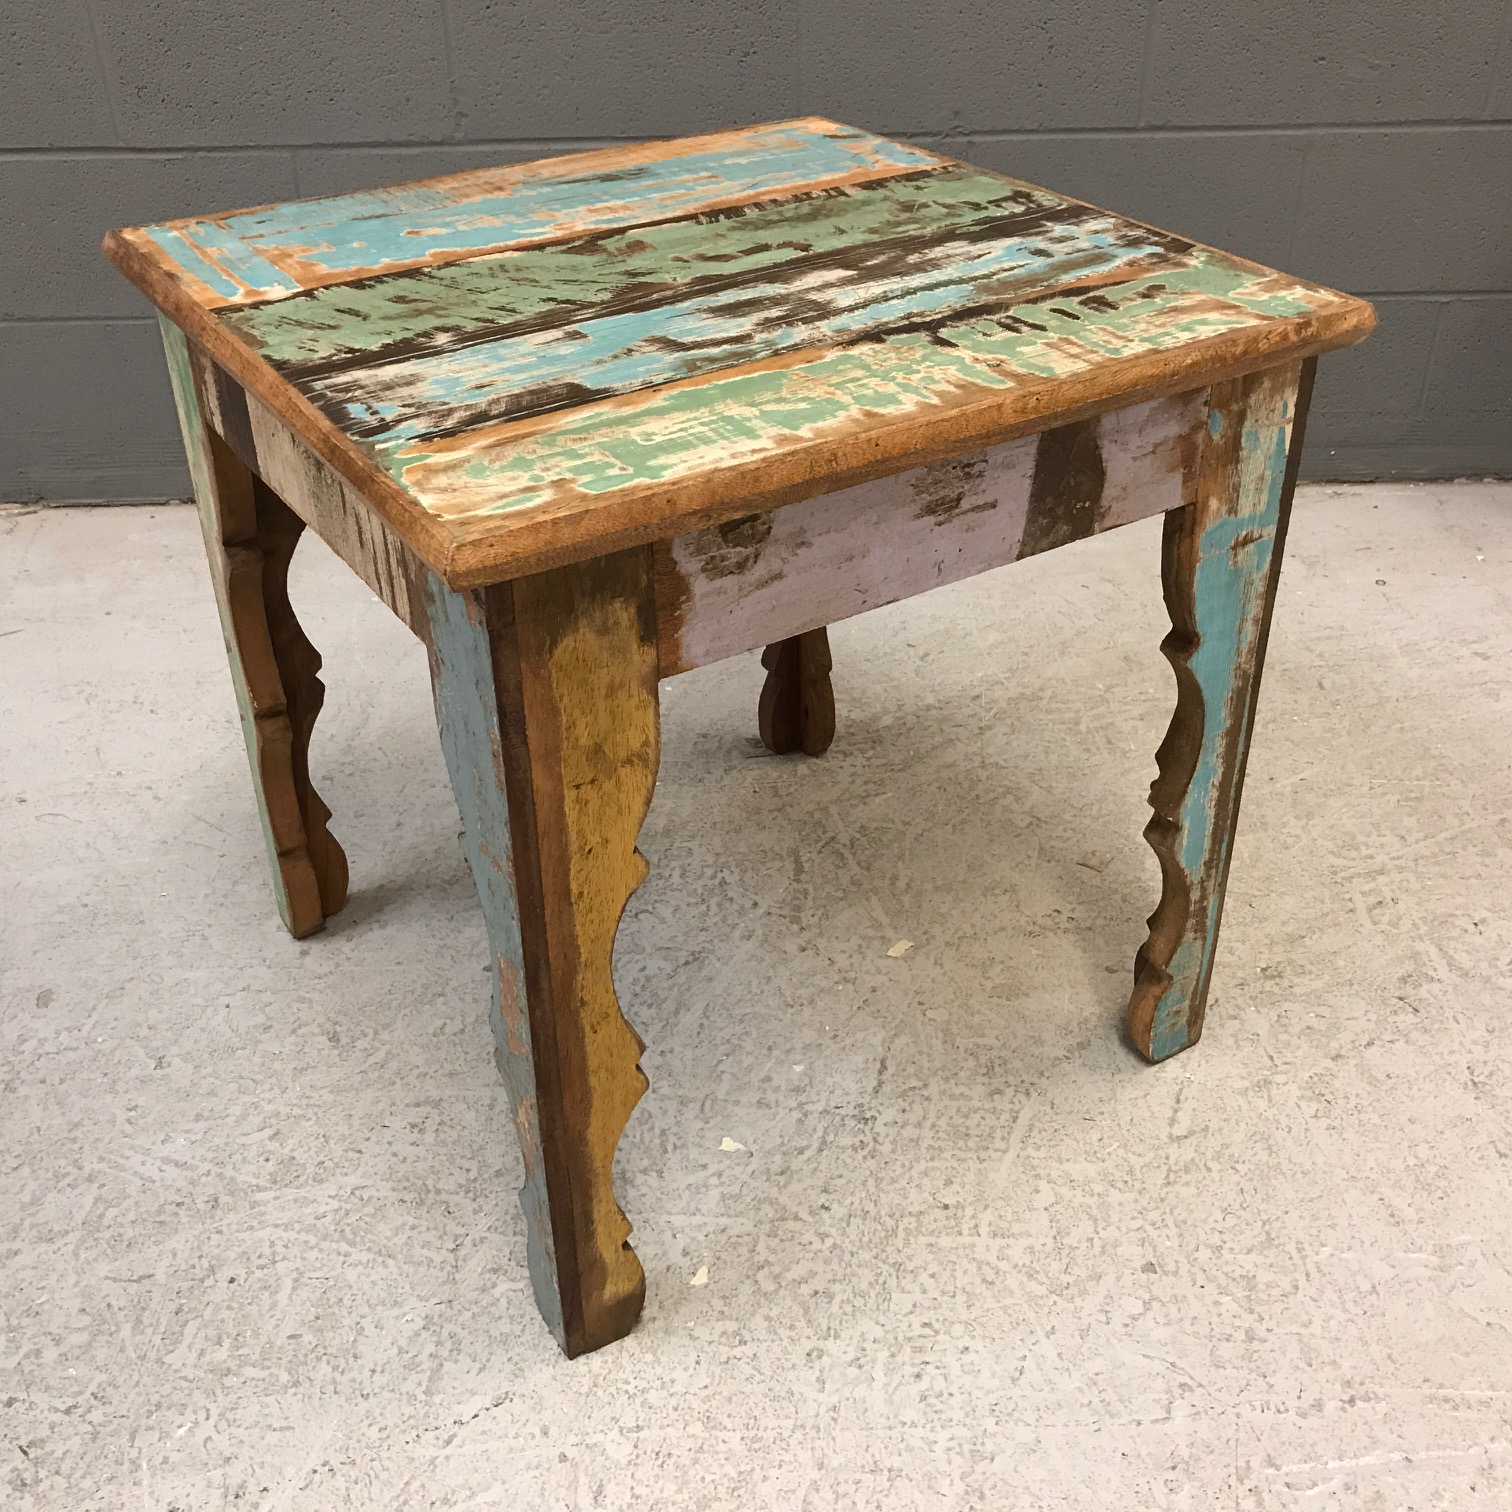 Reclaimed Wood End Tables ~ Reclaimed wood side table nadeau nashville